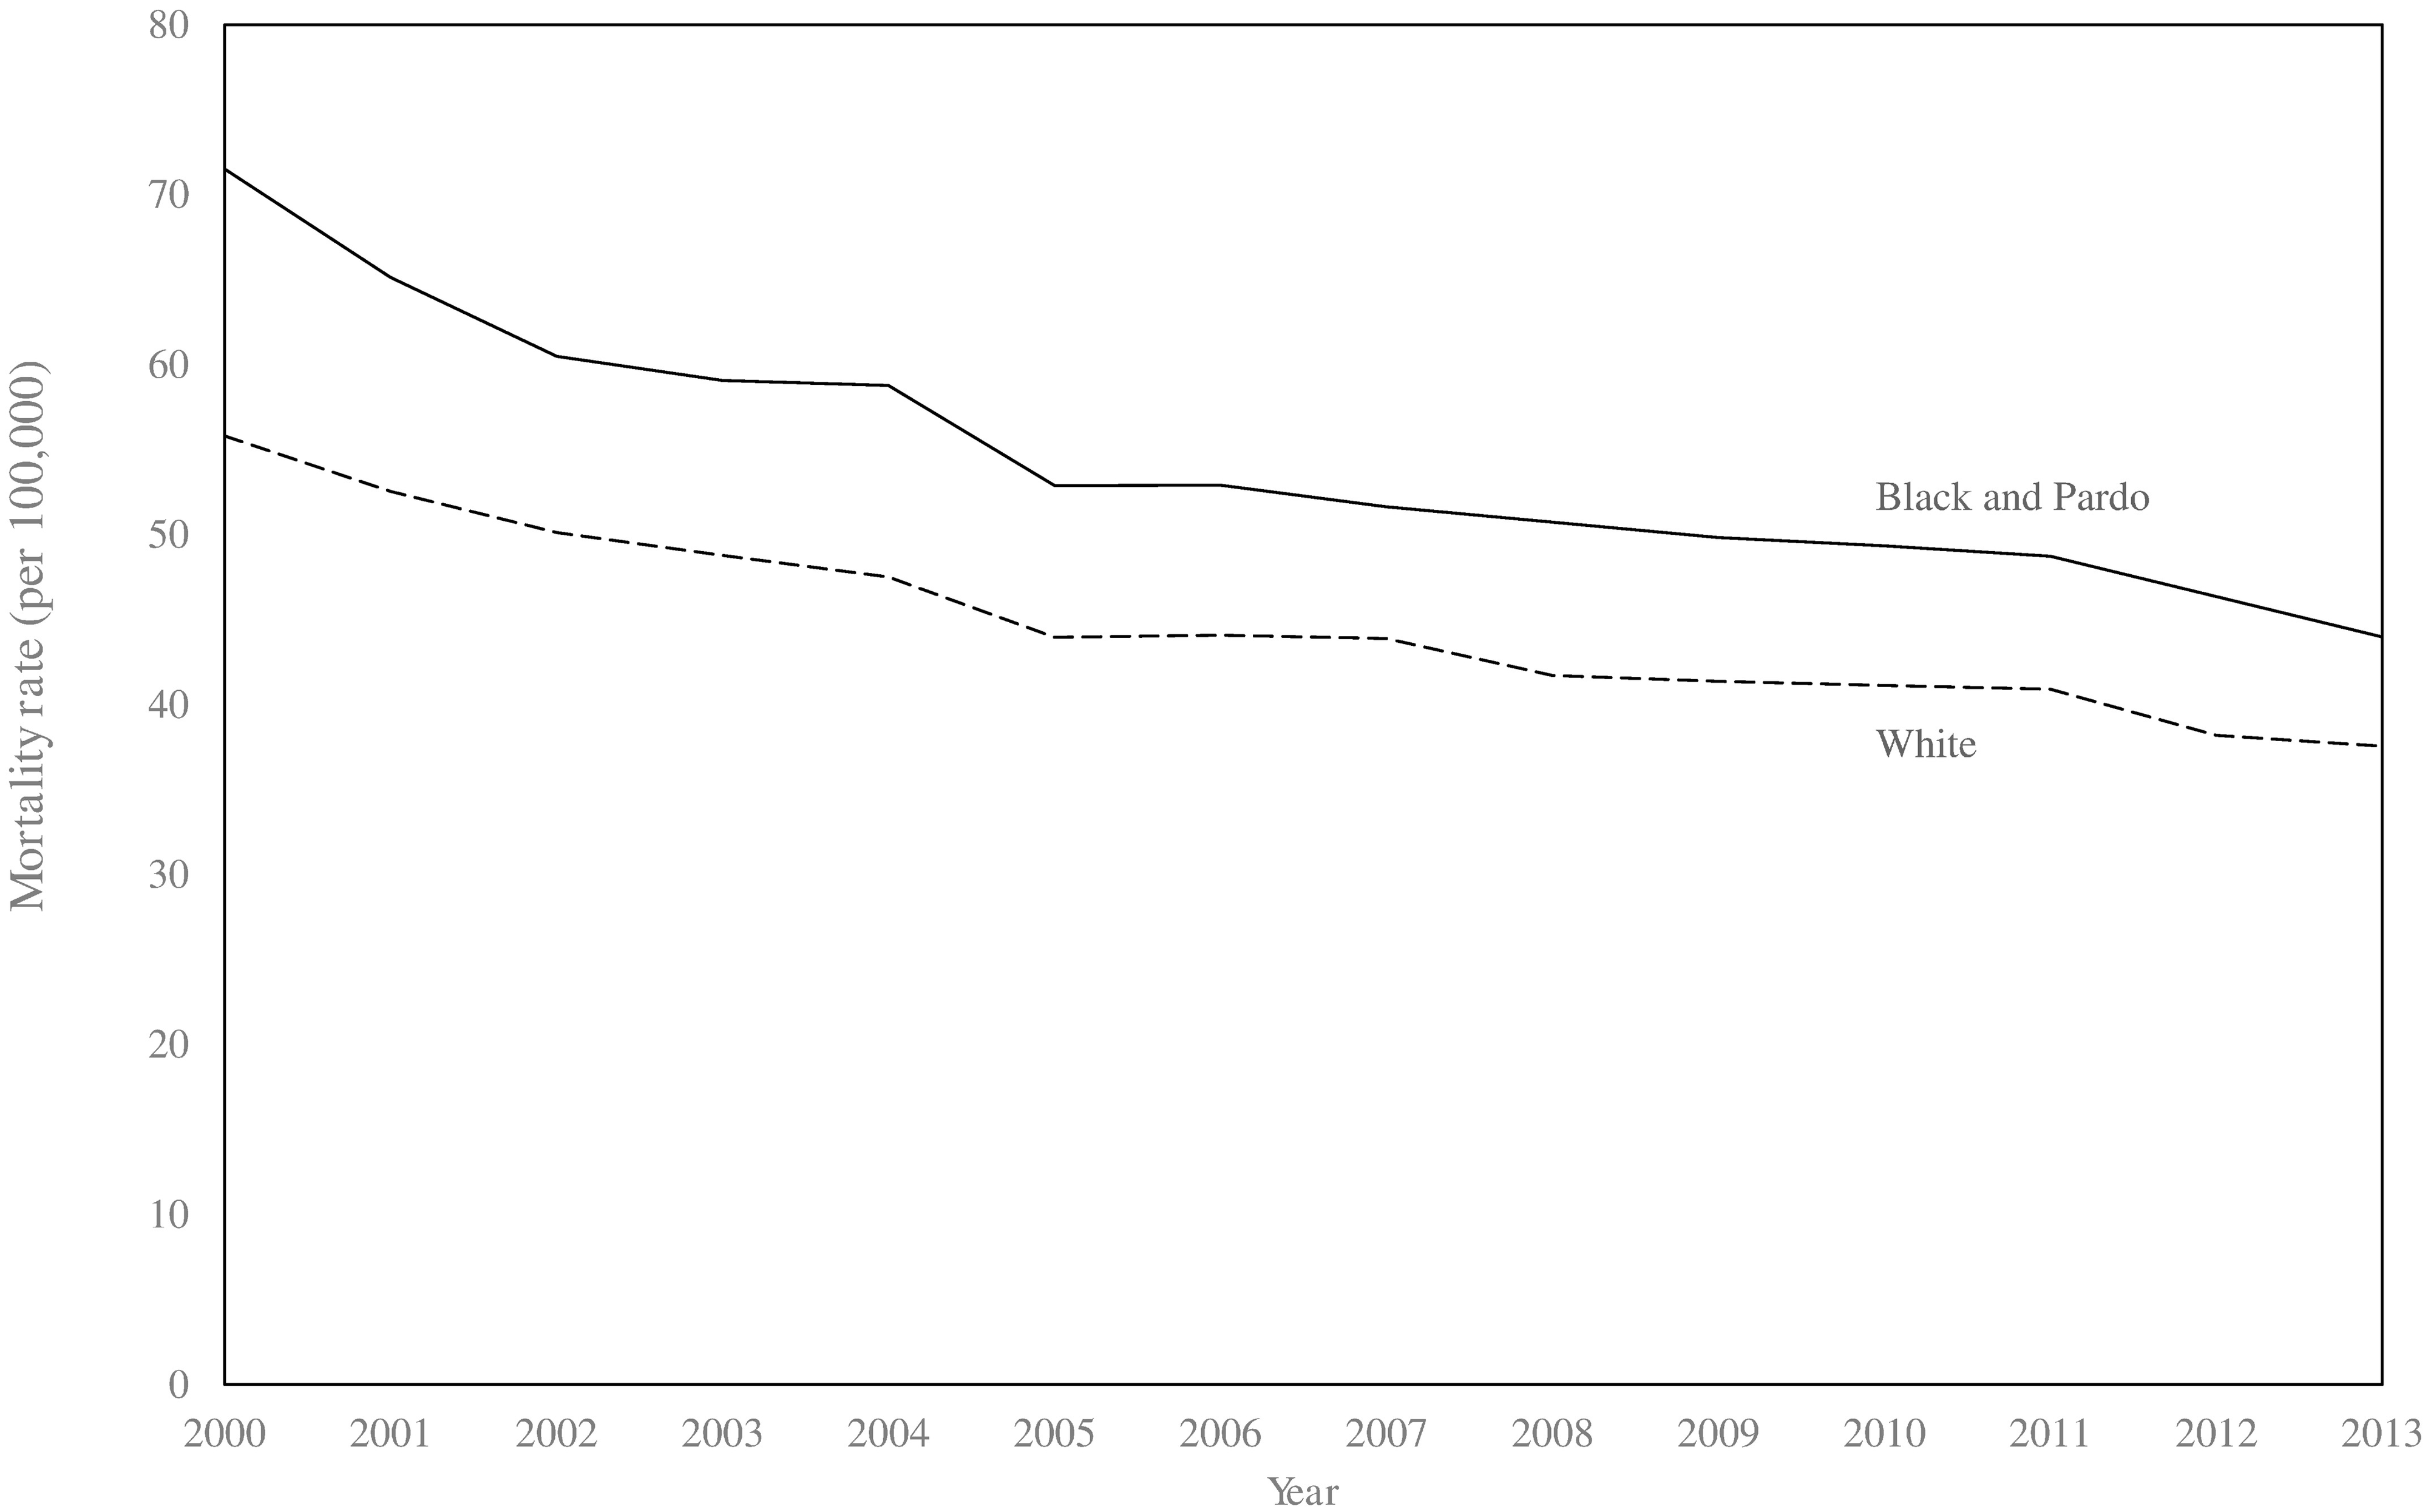 Age-standardised mortality rates for ambulatory-care-sensitive conditions in black/<i>pardo</i> and white populations in Brazil (2000–2013).